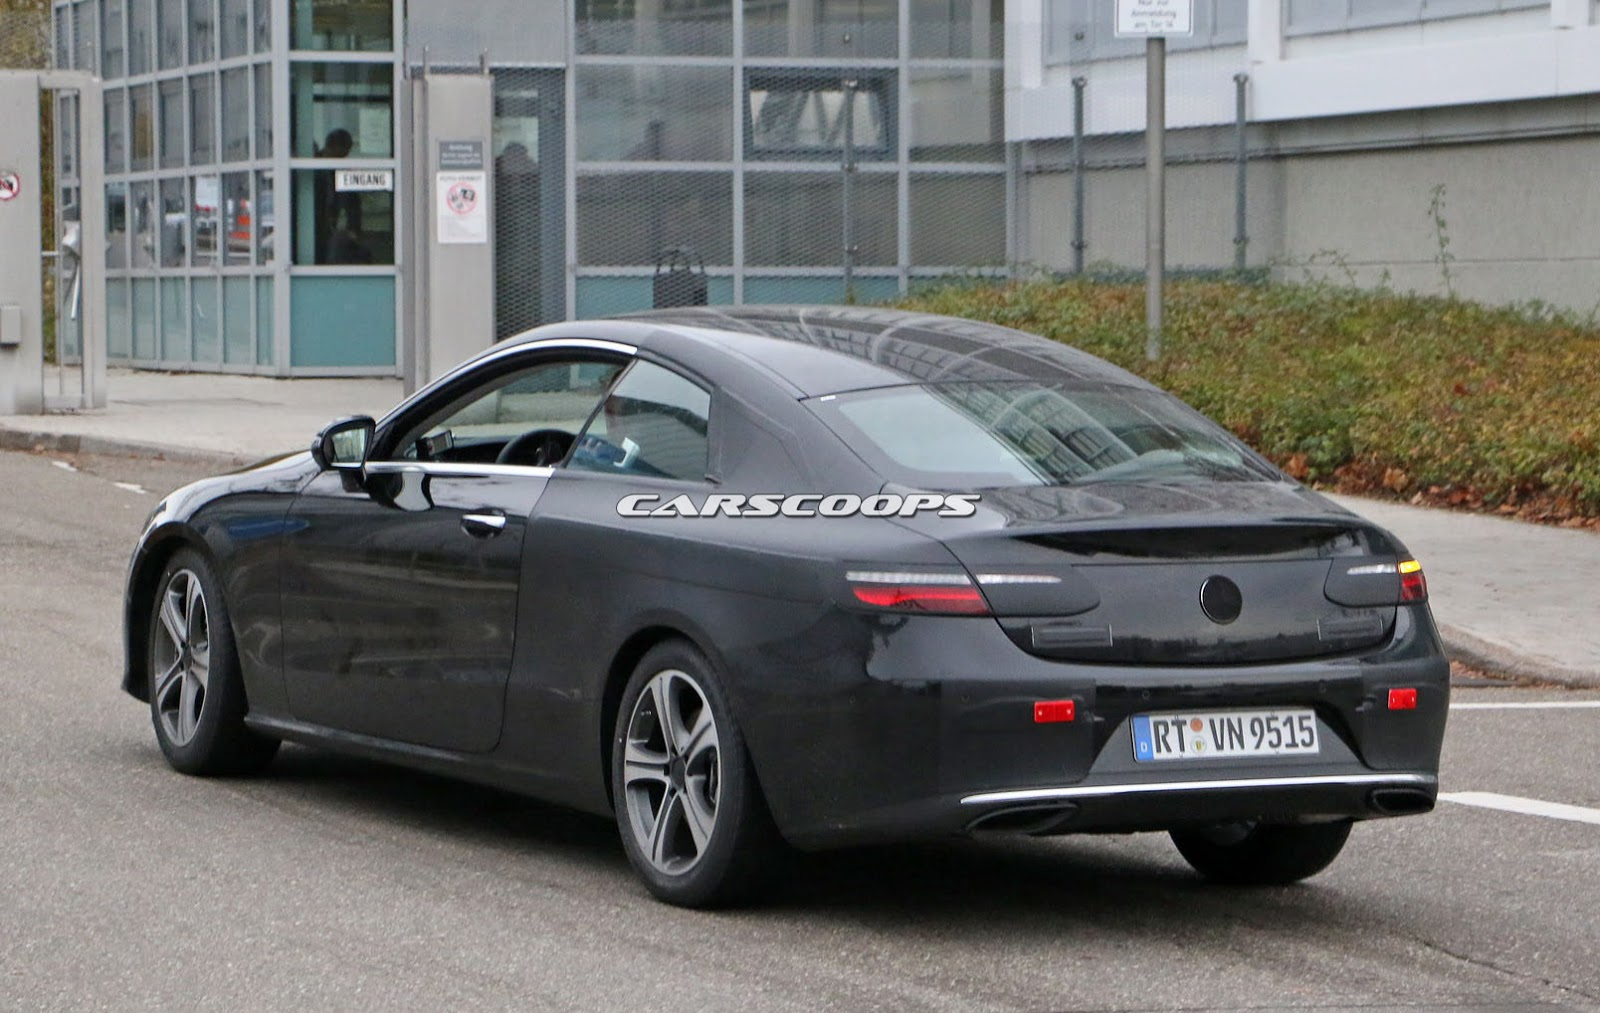 2017 mercedes e class coupe looks predictably elegant in latest spy shots. Black Bedroom Furniture Sets. Home Design Ideas